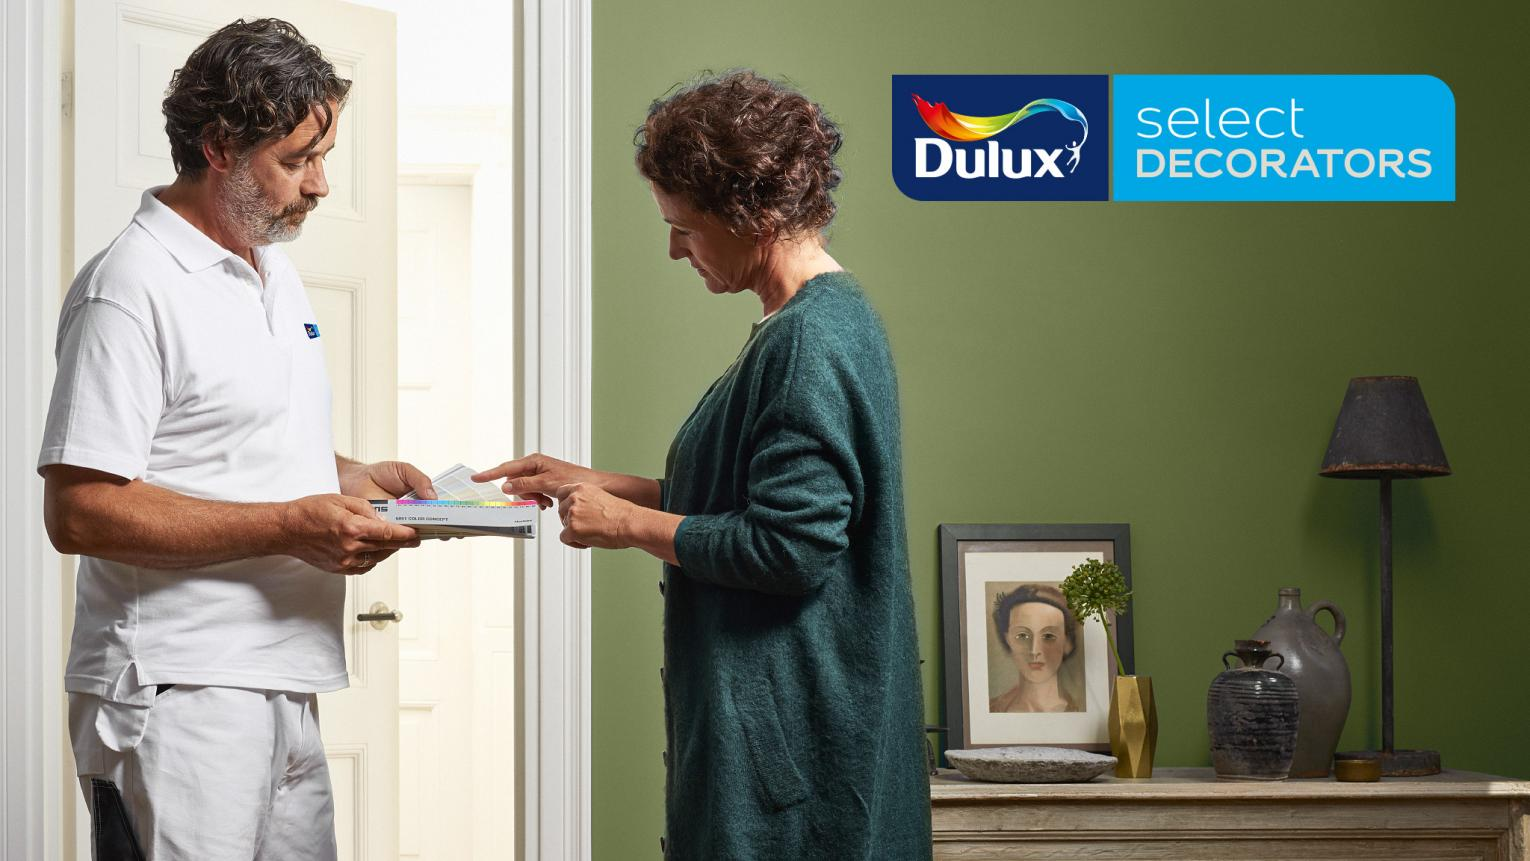 Dulux Unveils New state-of-the-art Select Website to help connect homeowners with quality Dulux Select decorators to help them bounce back.